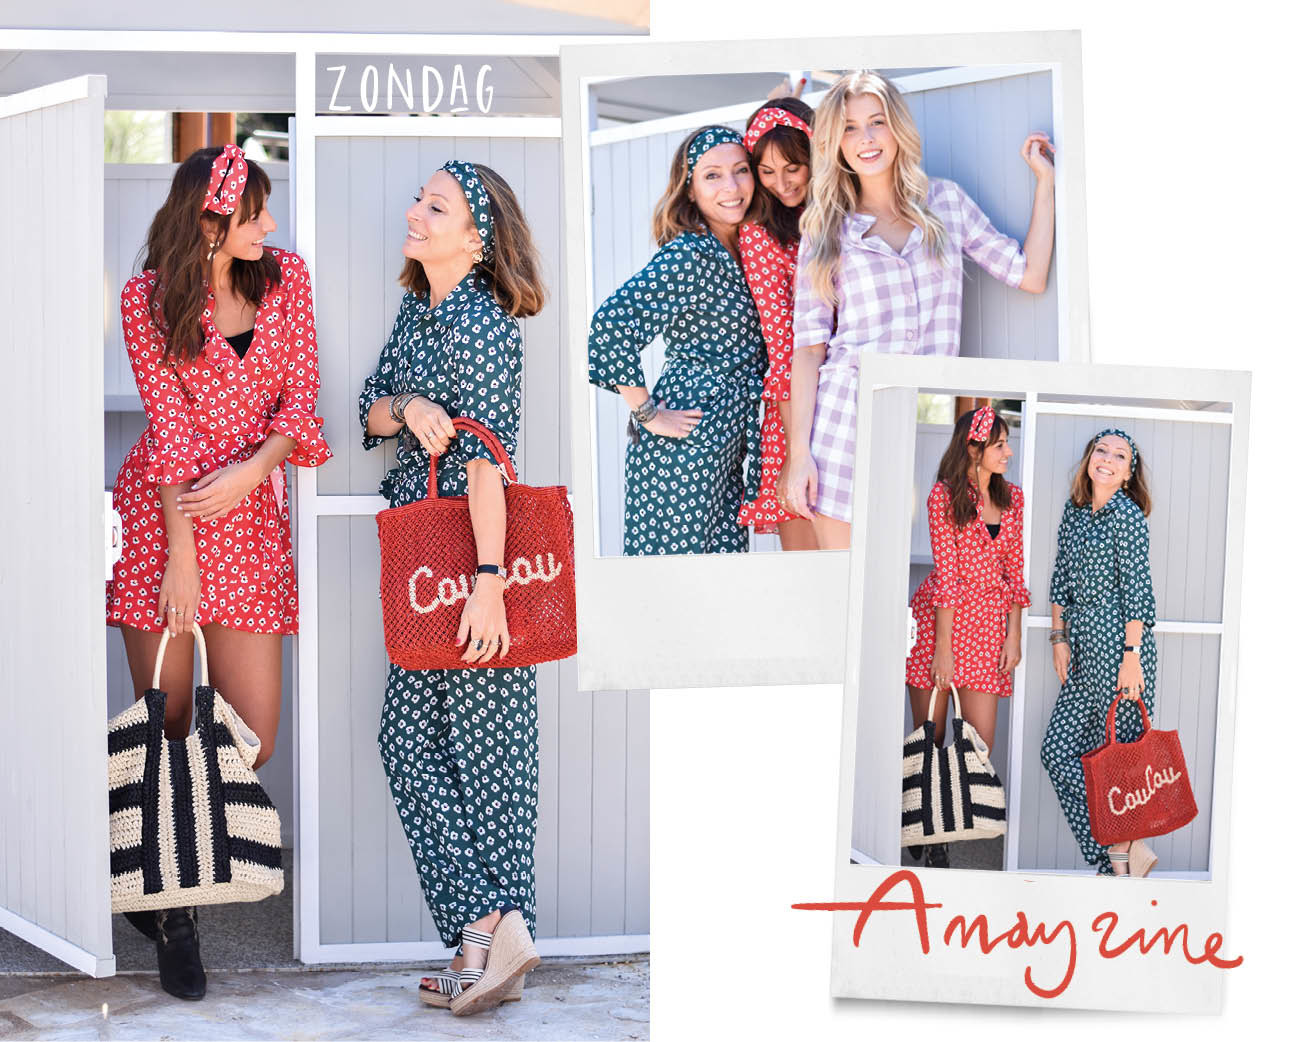 may, lil en belle in de look of the day, outfit van ou boutique, kleuren, prints